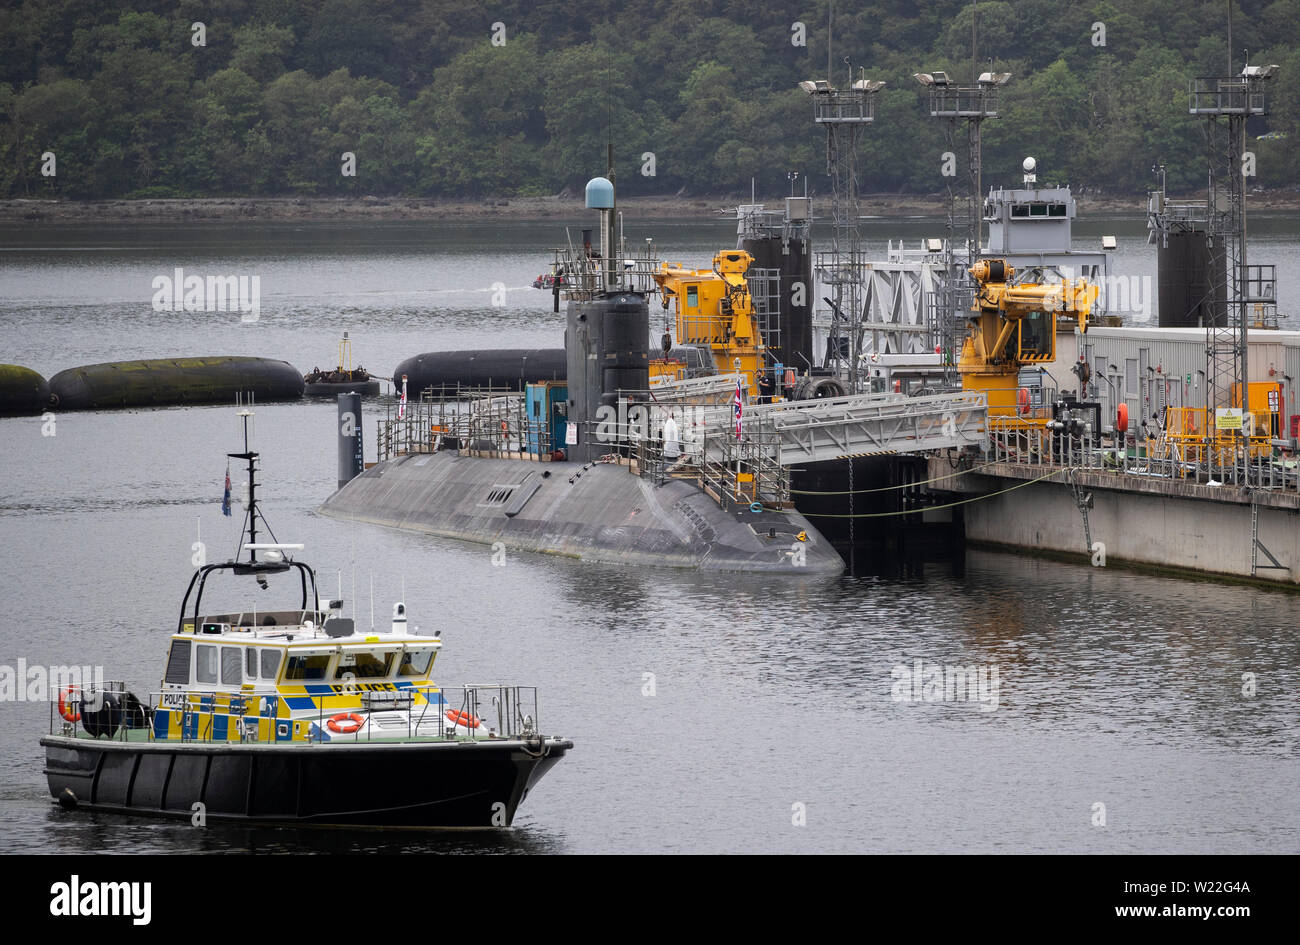 One of the Vanguard Class Ship nuclear submarines in the dock at HM Naval Base Clyde, the home of the UK Submarine Service at Faslane in Argyll and Bute. - Stock Image